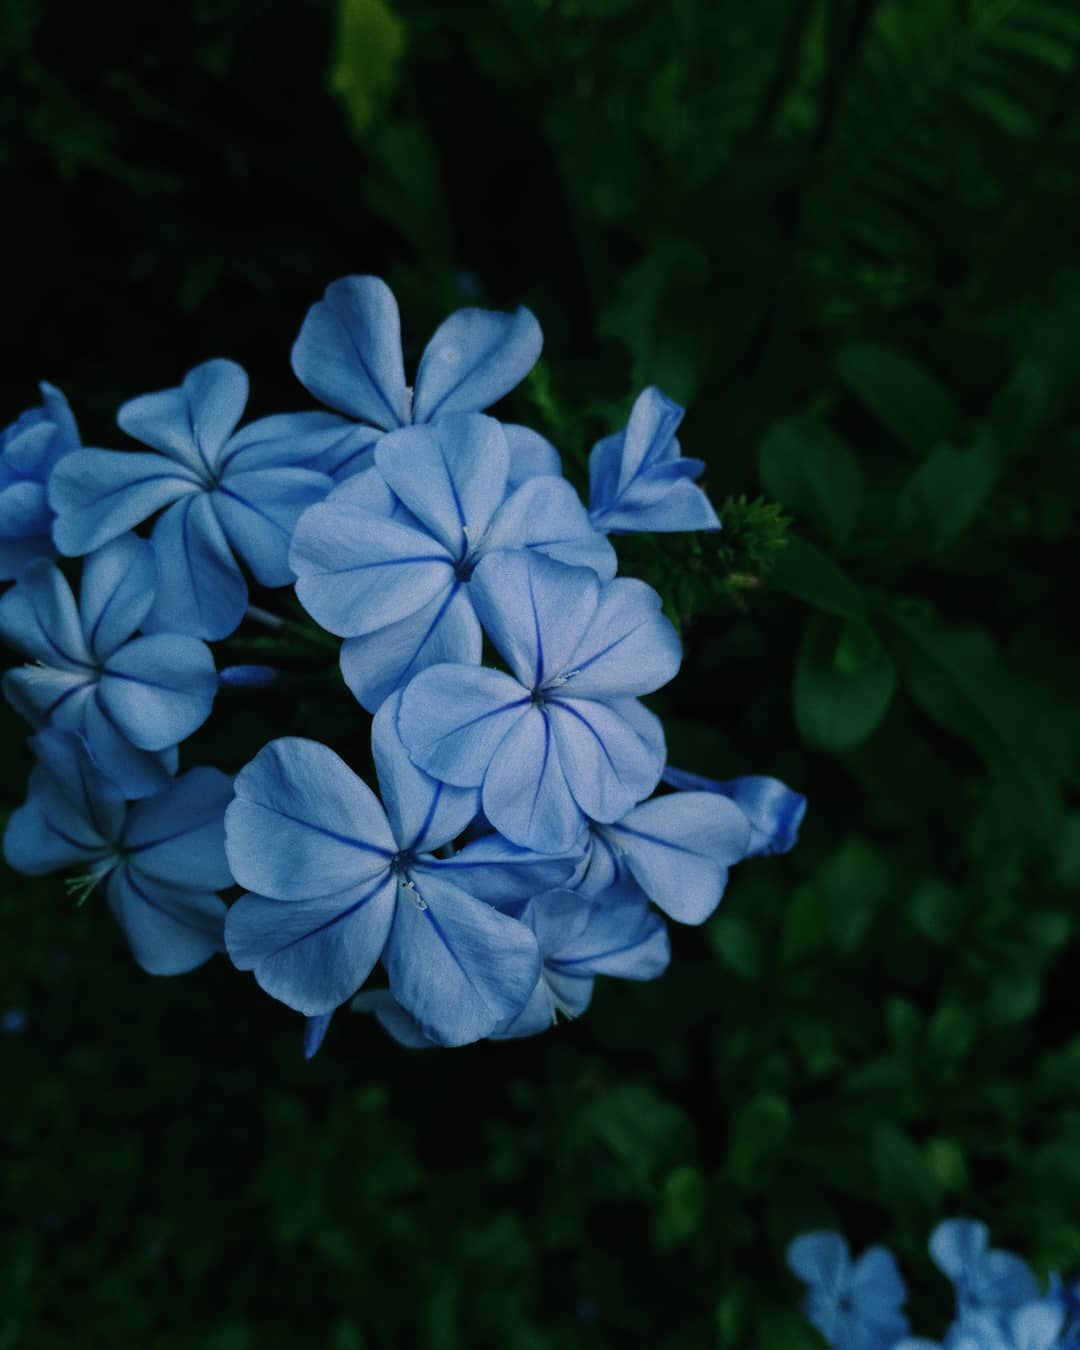 [New] The 10 Best Home Decor (with Pictures) -  Wow photo with good quality what happened #photo #camera #flowers #aesthetic #garden #photophabryka #blue #summer #throwback #instapic #instagood #instaphoto